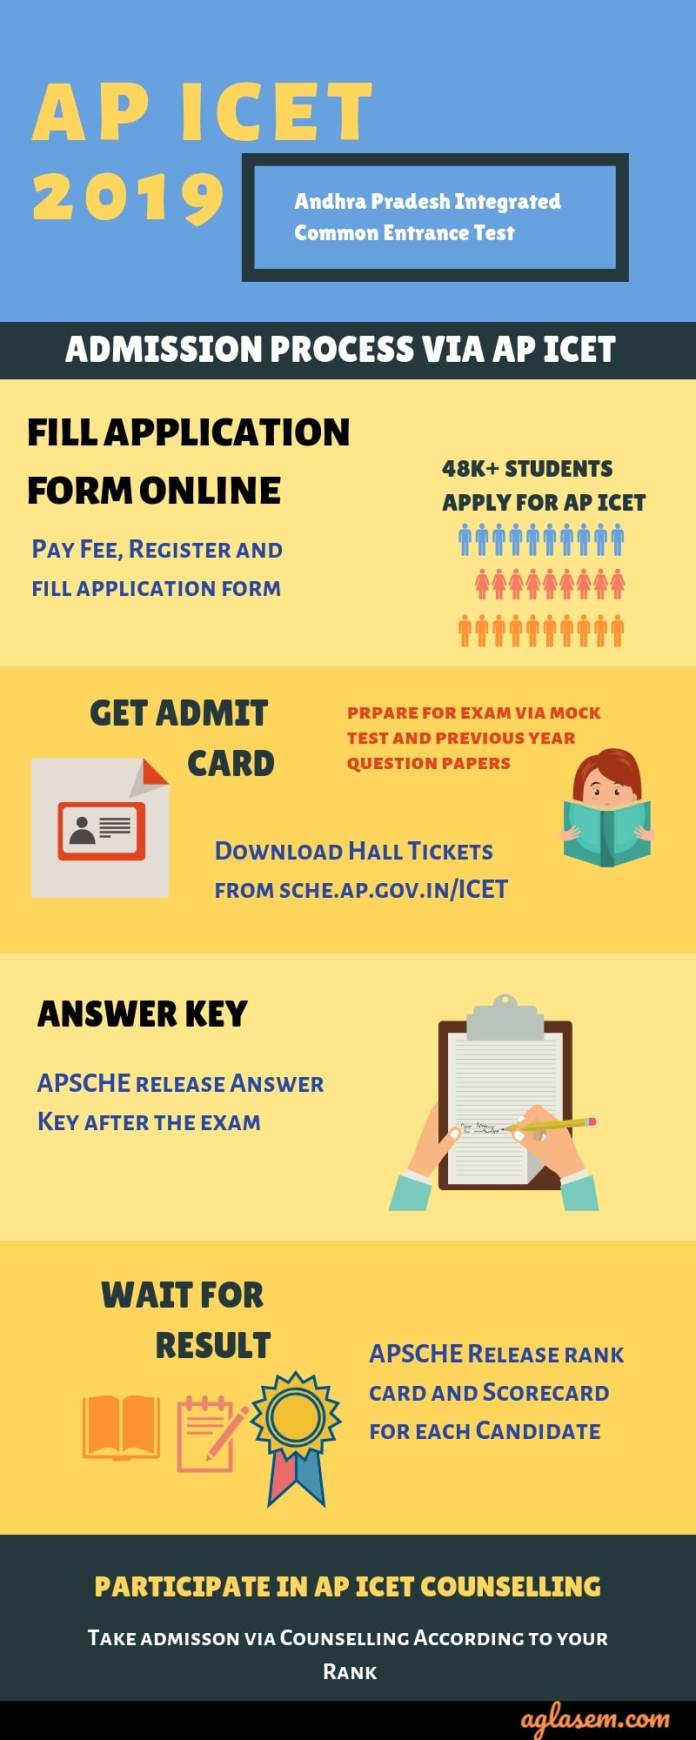 AP ICET 2019 Complete Step by Step Admission Procedure